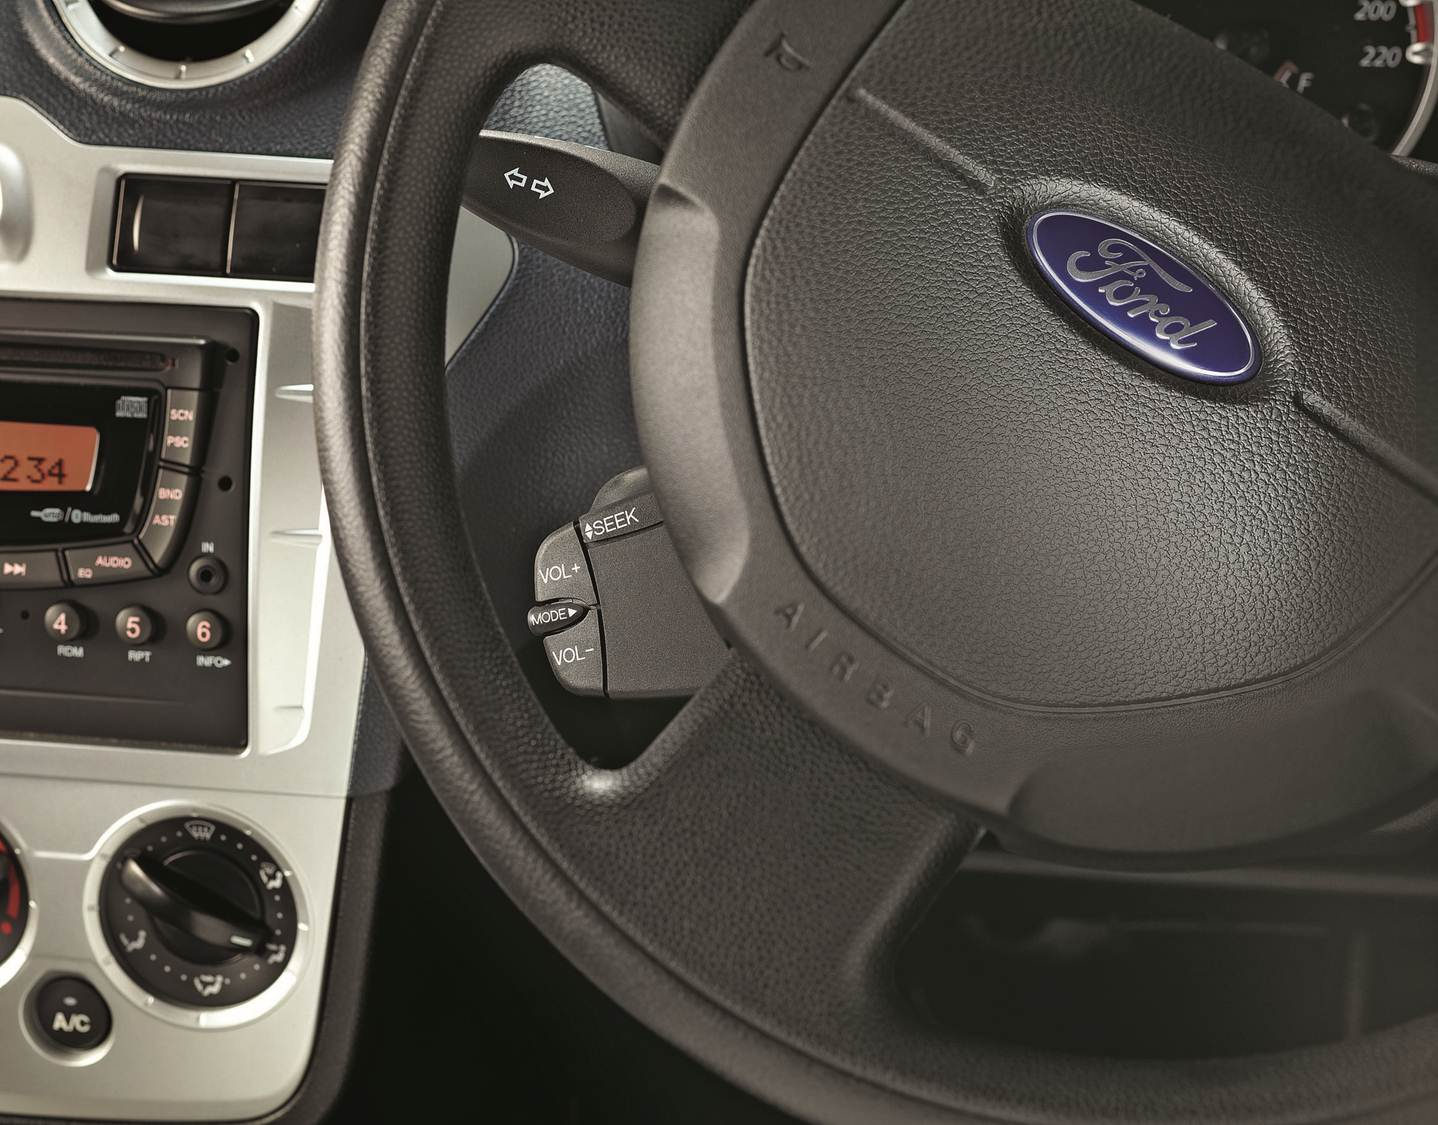 Ford-Figo-Steering-Column-Mounted-Audio-Control